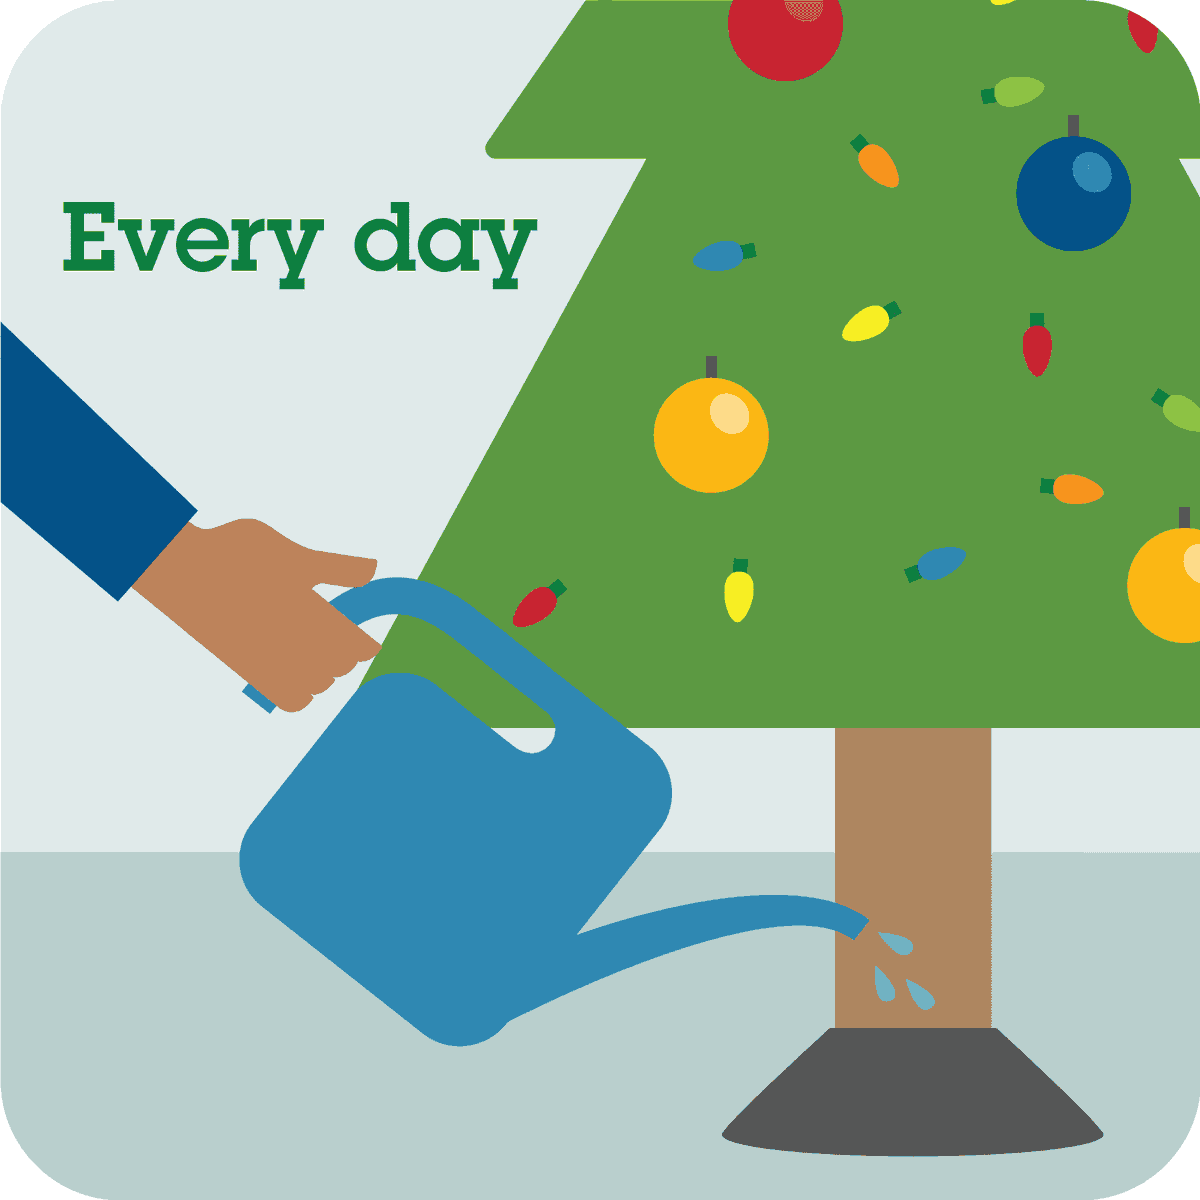 NEW Blog from @NIST: Holiday Fire Safety Tips: Always Keep Your Christmas Tree Well-Watered. @usfire @fema #WednesdayWisdom  https://www.commerce.gov/news/blog/2019/12/holiday-fire-safety … …